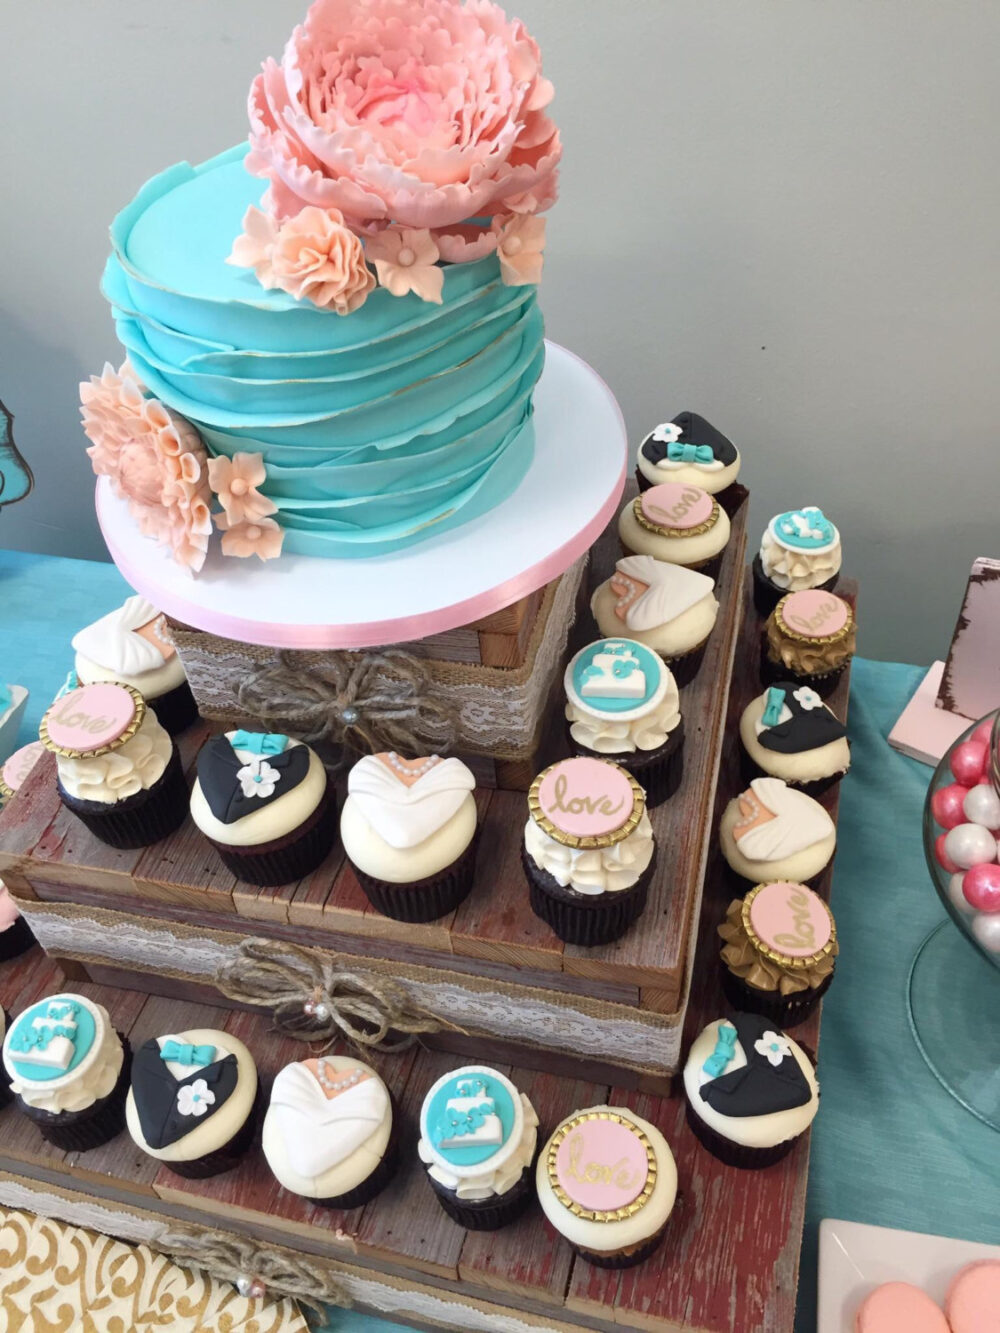 Rustic Cupcake Stand/Cake Wedding Decorations Table Centerpiece 3 Tier Holder Reception